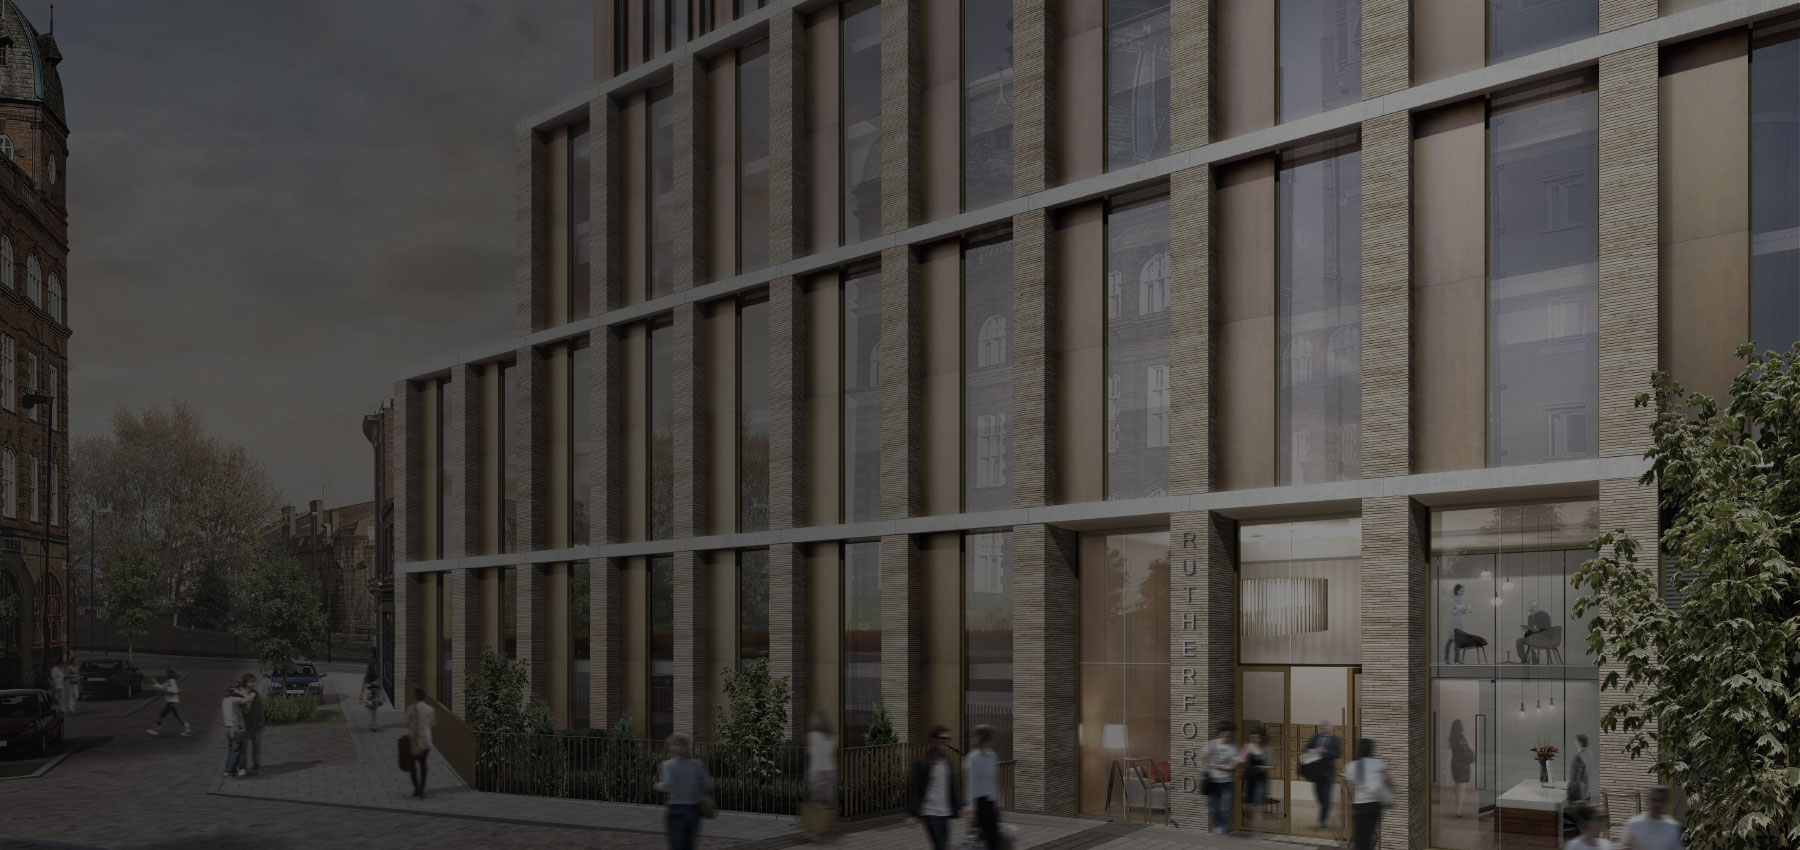 Newcastle's tallest building set to break onto the global stage